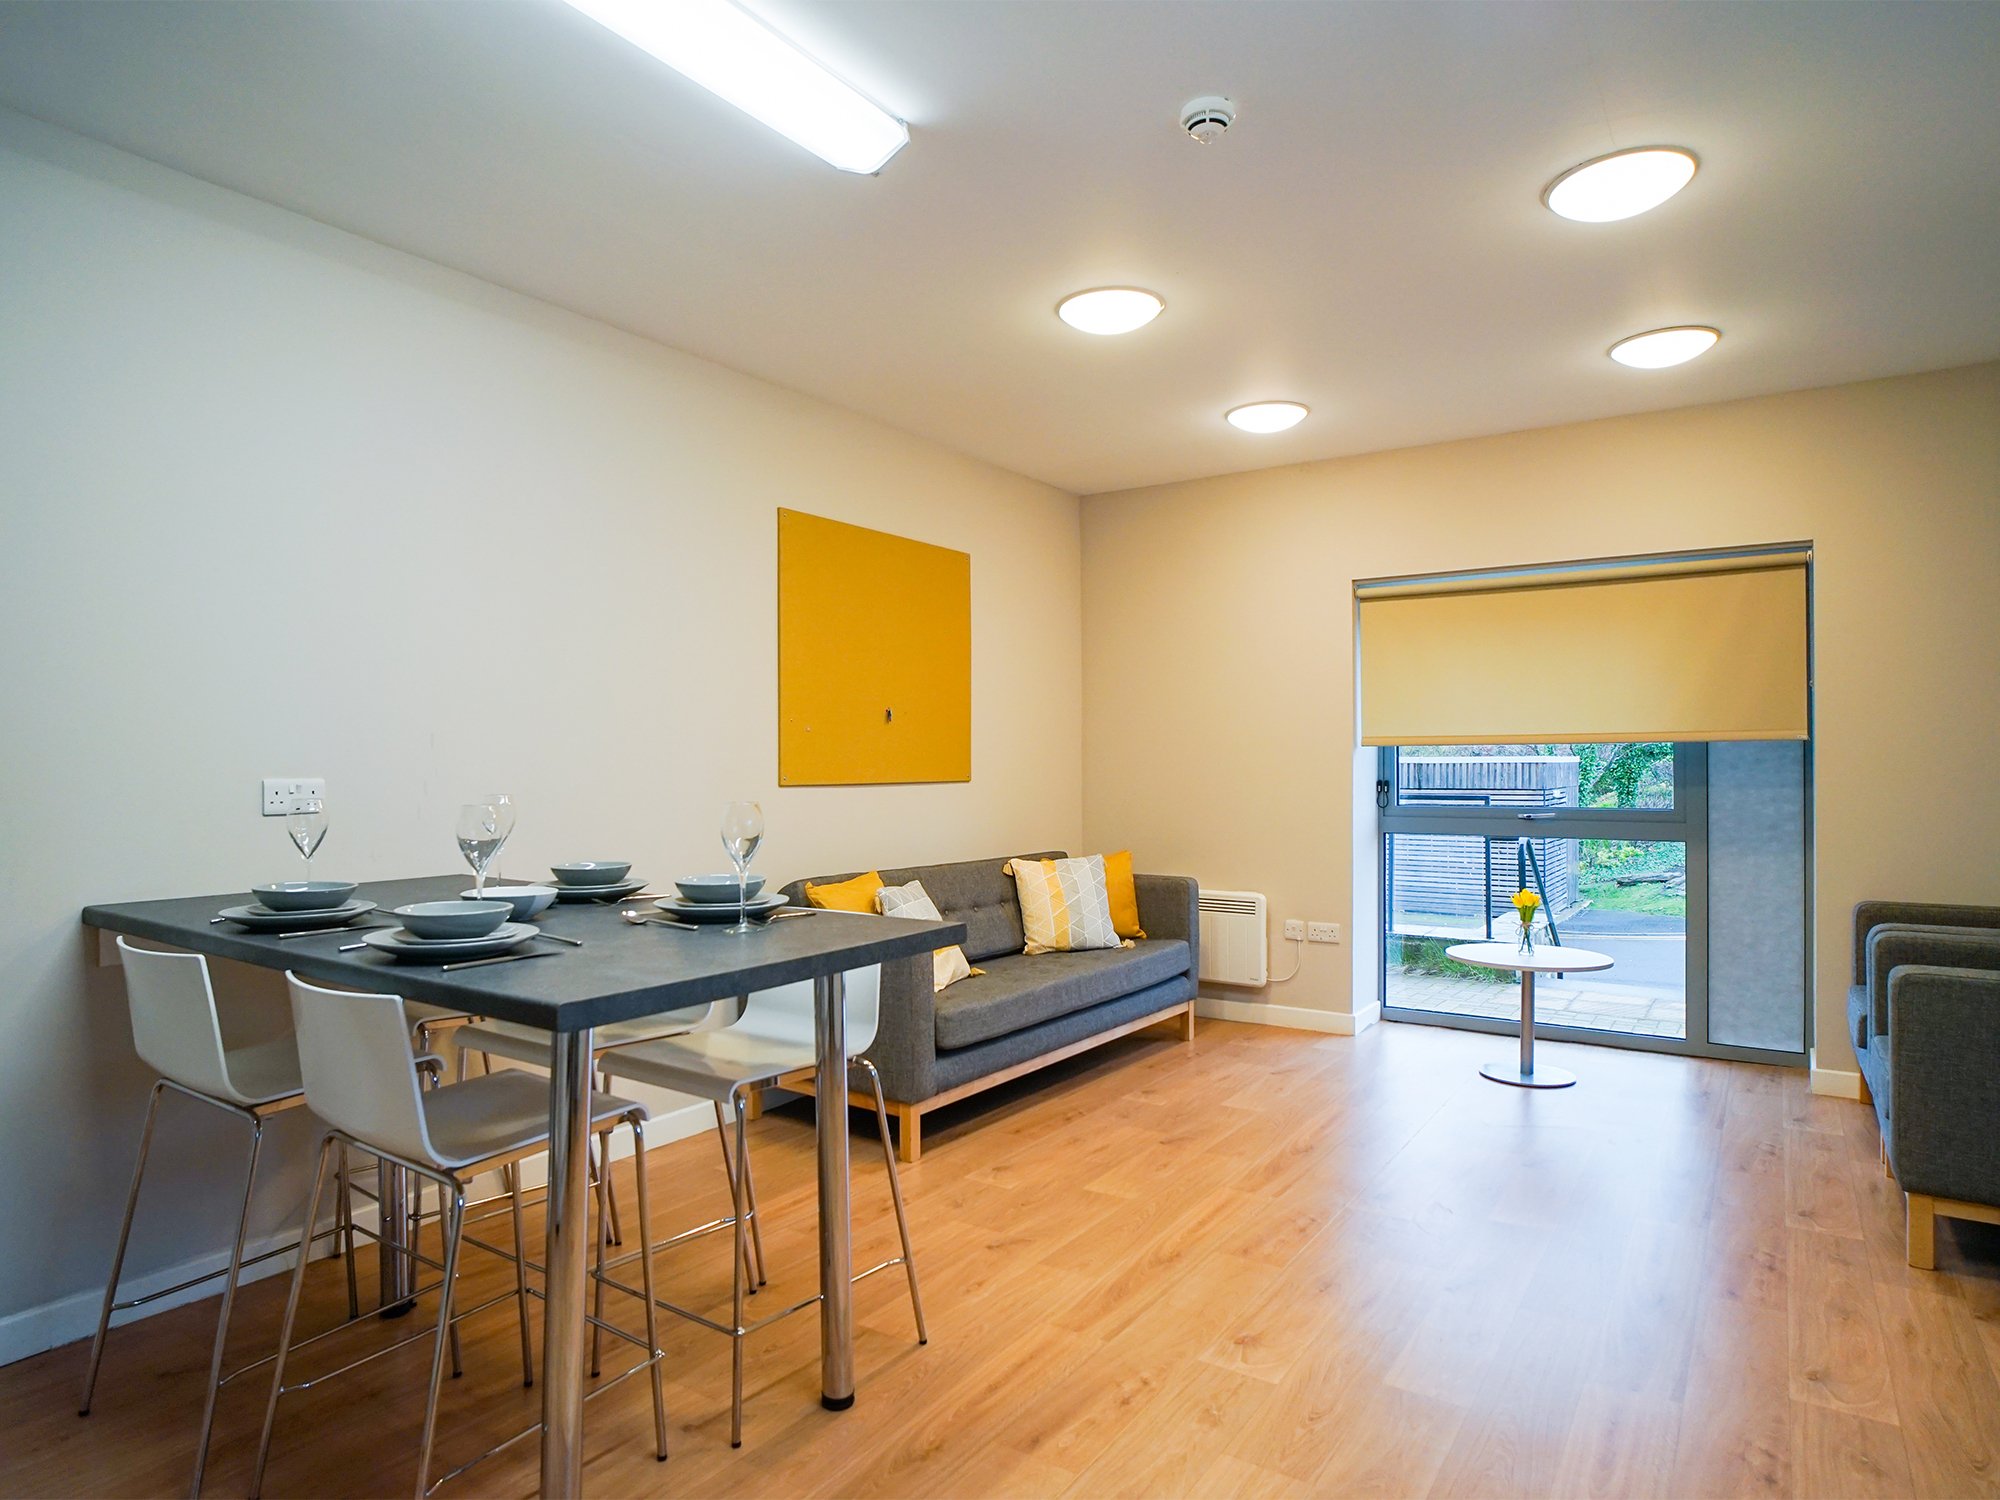 lounge space centro house student accommodation Stirling